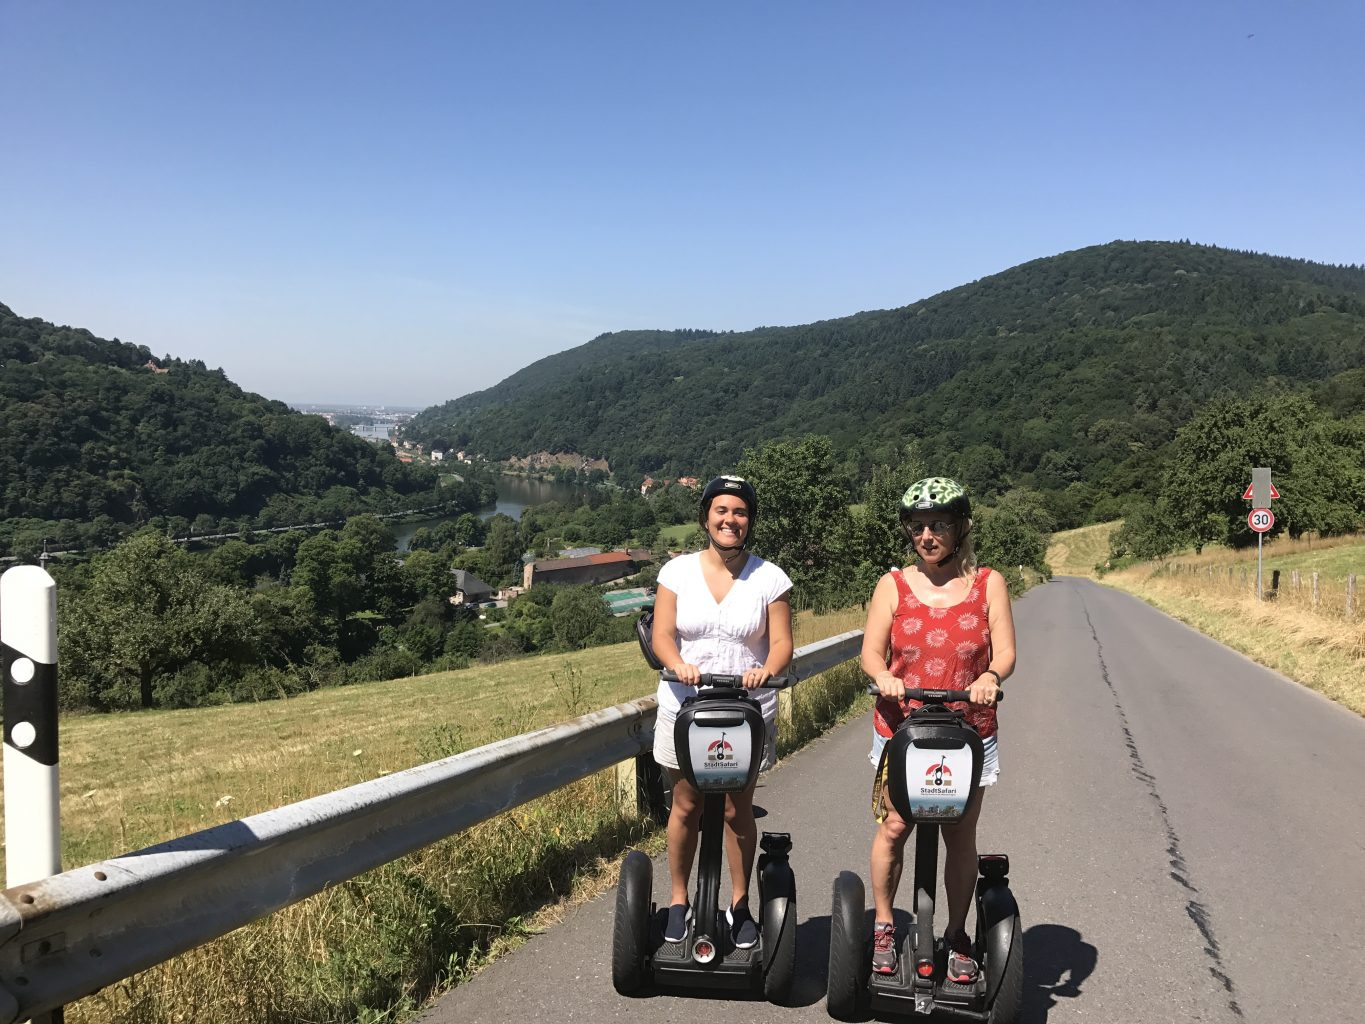 Segway tour in Heidelberg, Germany - a fun thing to do when visiting Germany with teens